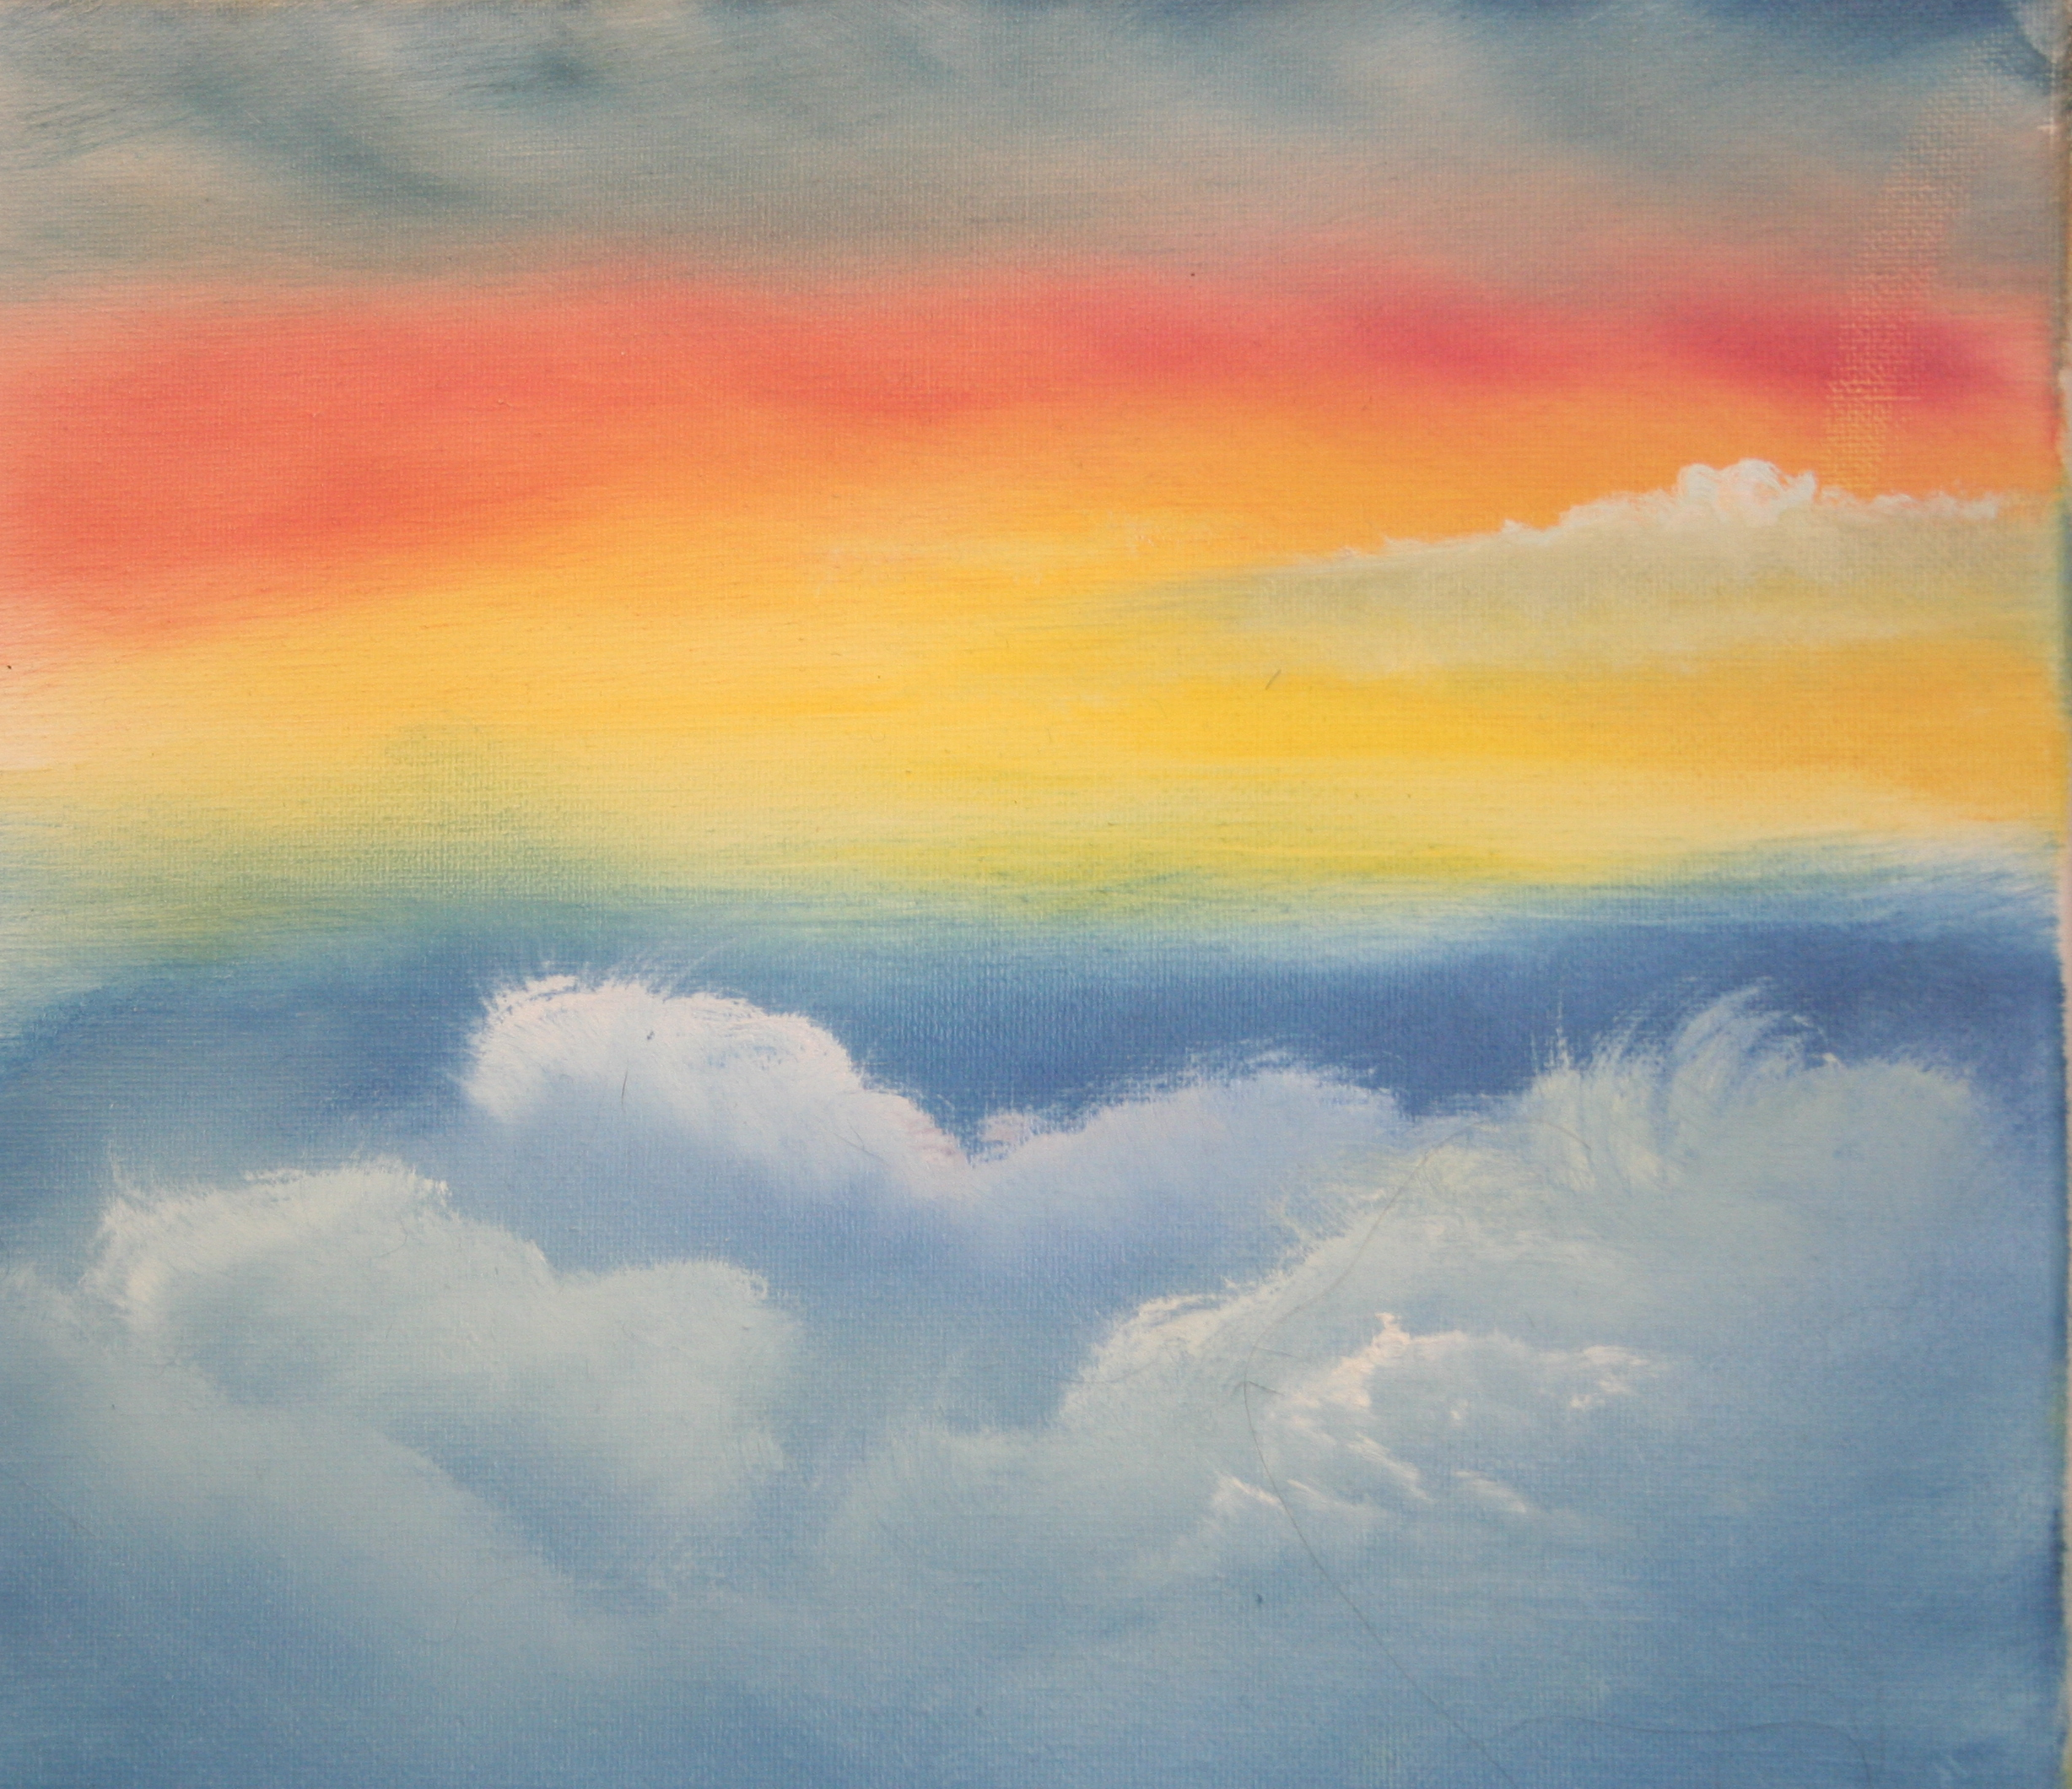 Oil Painting Practice Skies: Stage I